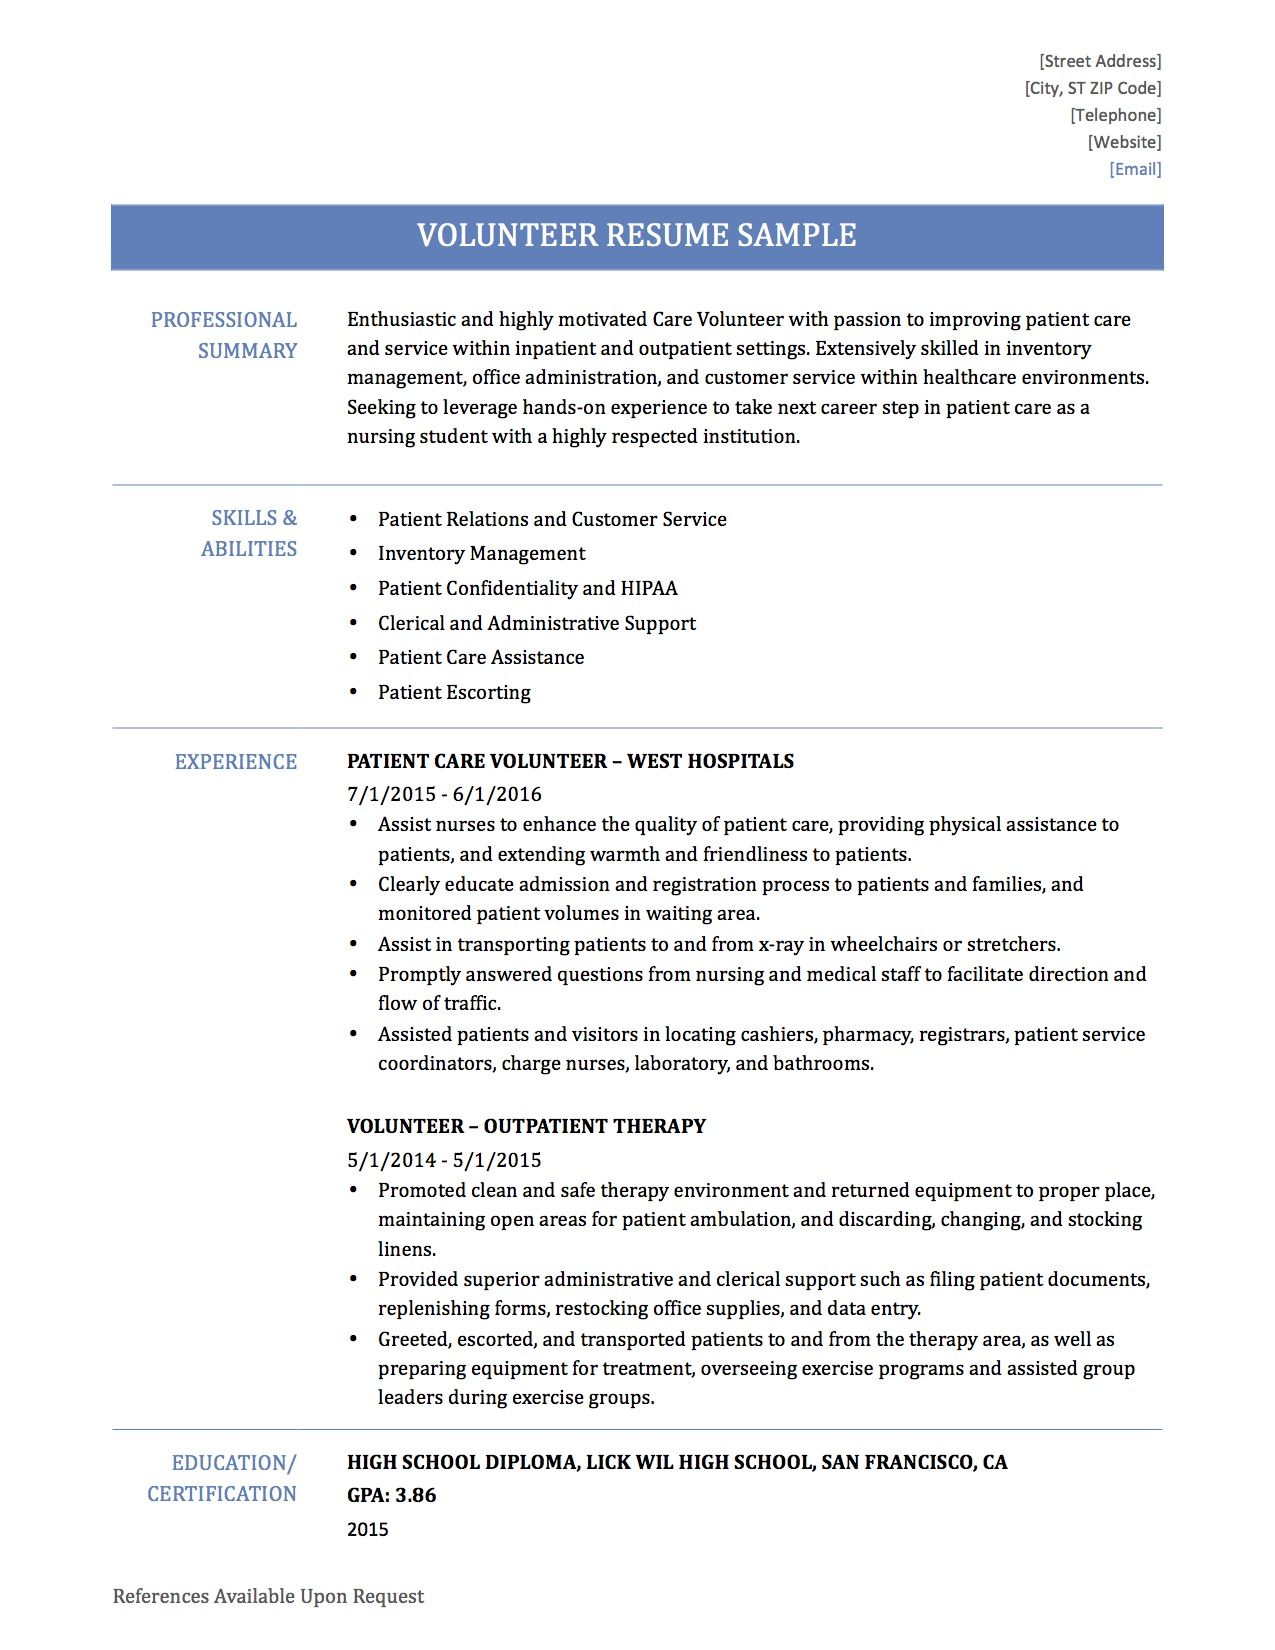 Volunteer Resume Samples Work And Experience Professional Hospital